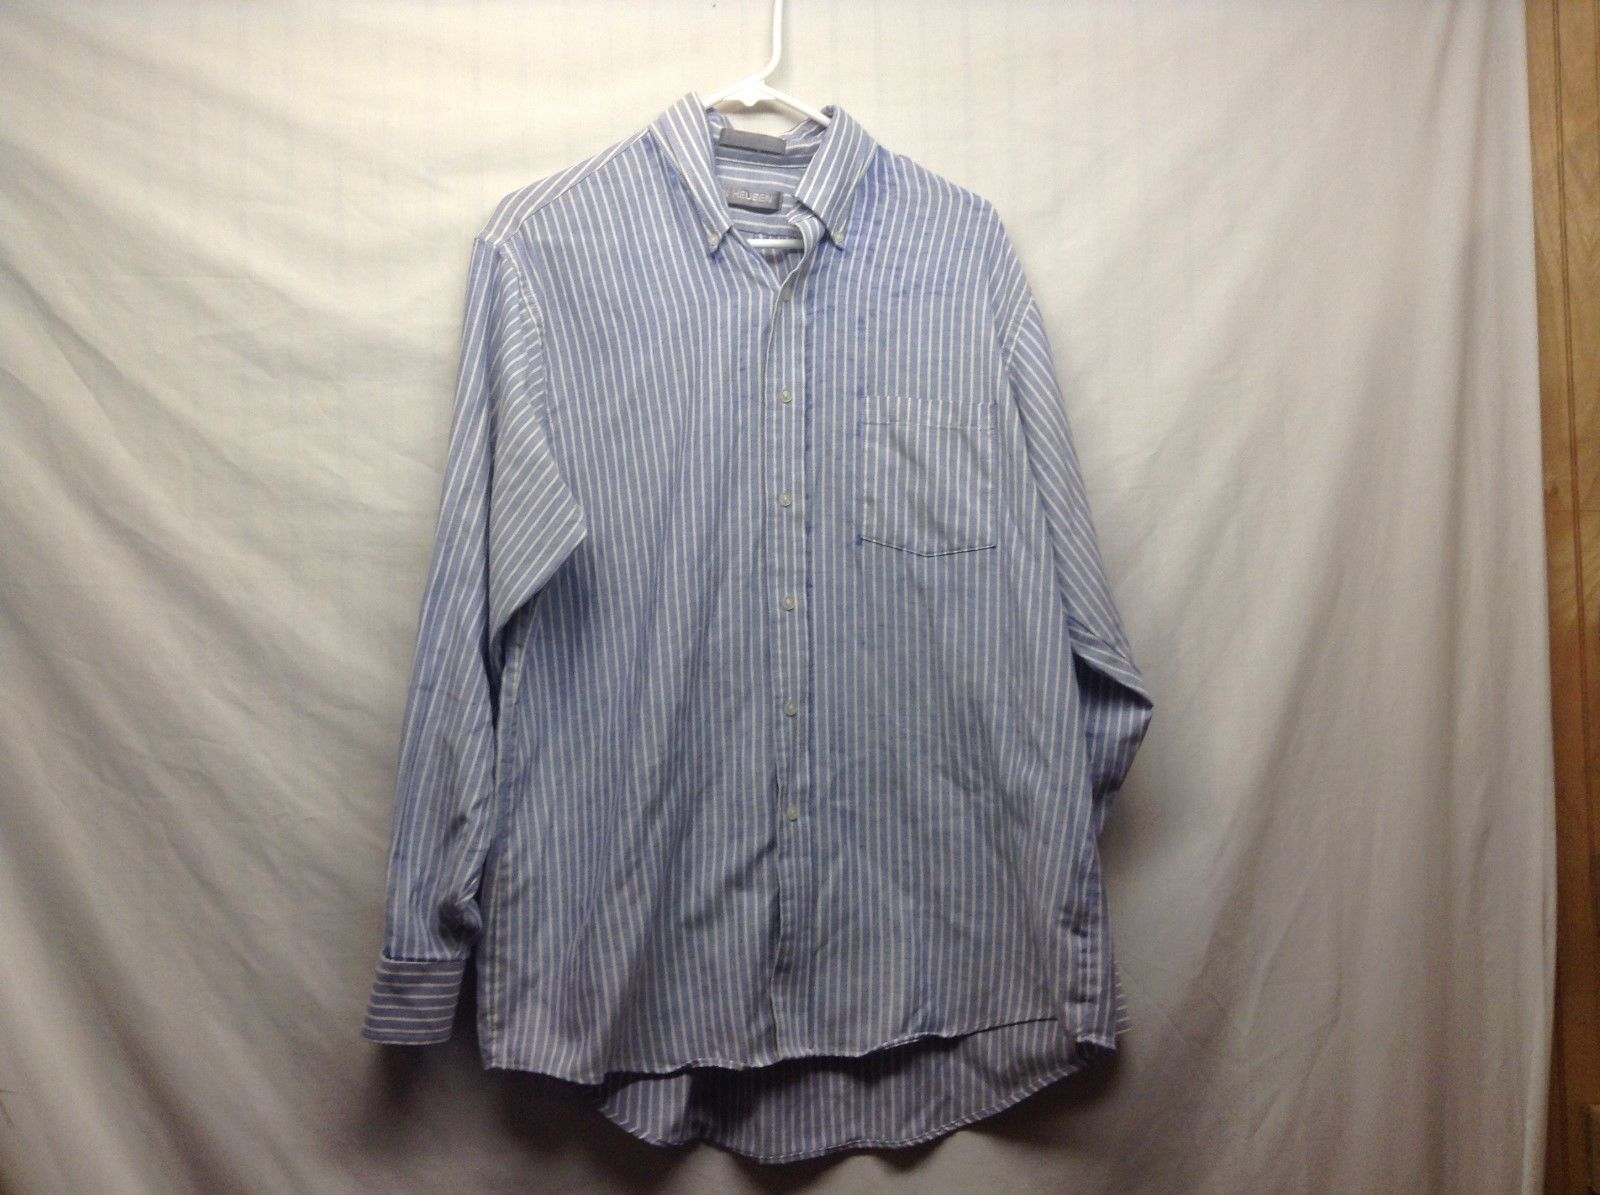 Van Heusen Light Blue Button Down Dress Shirt Sz 18.5 34/35